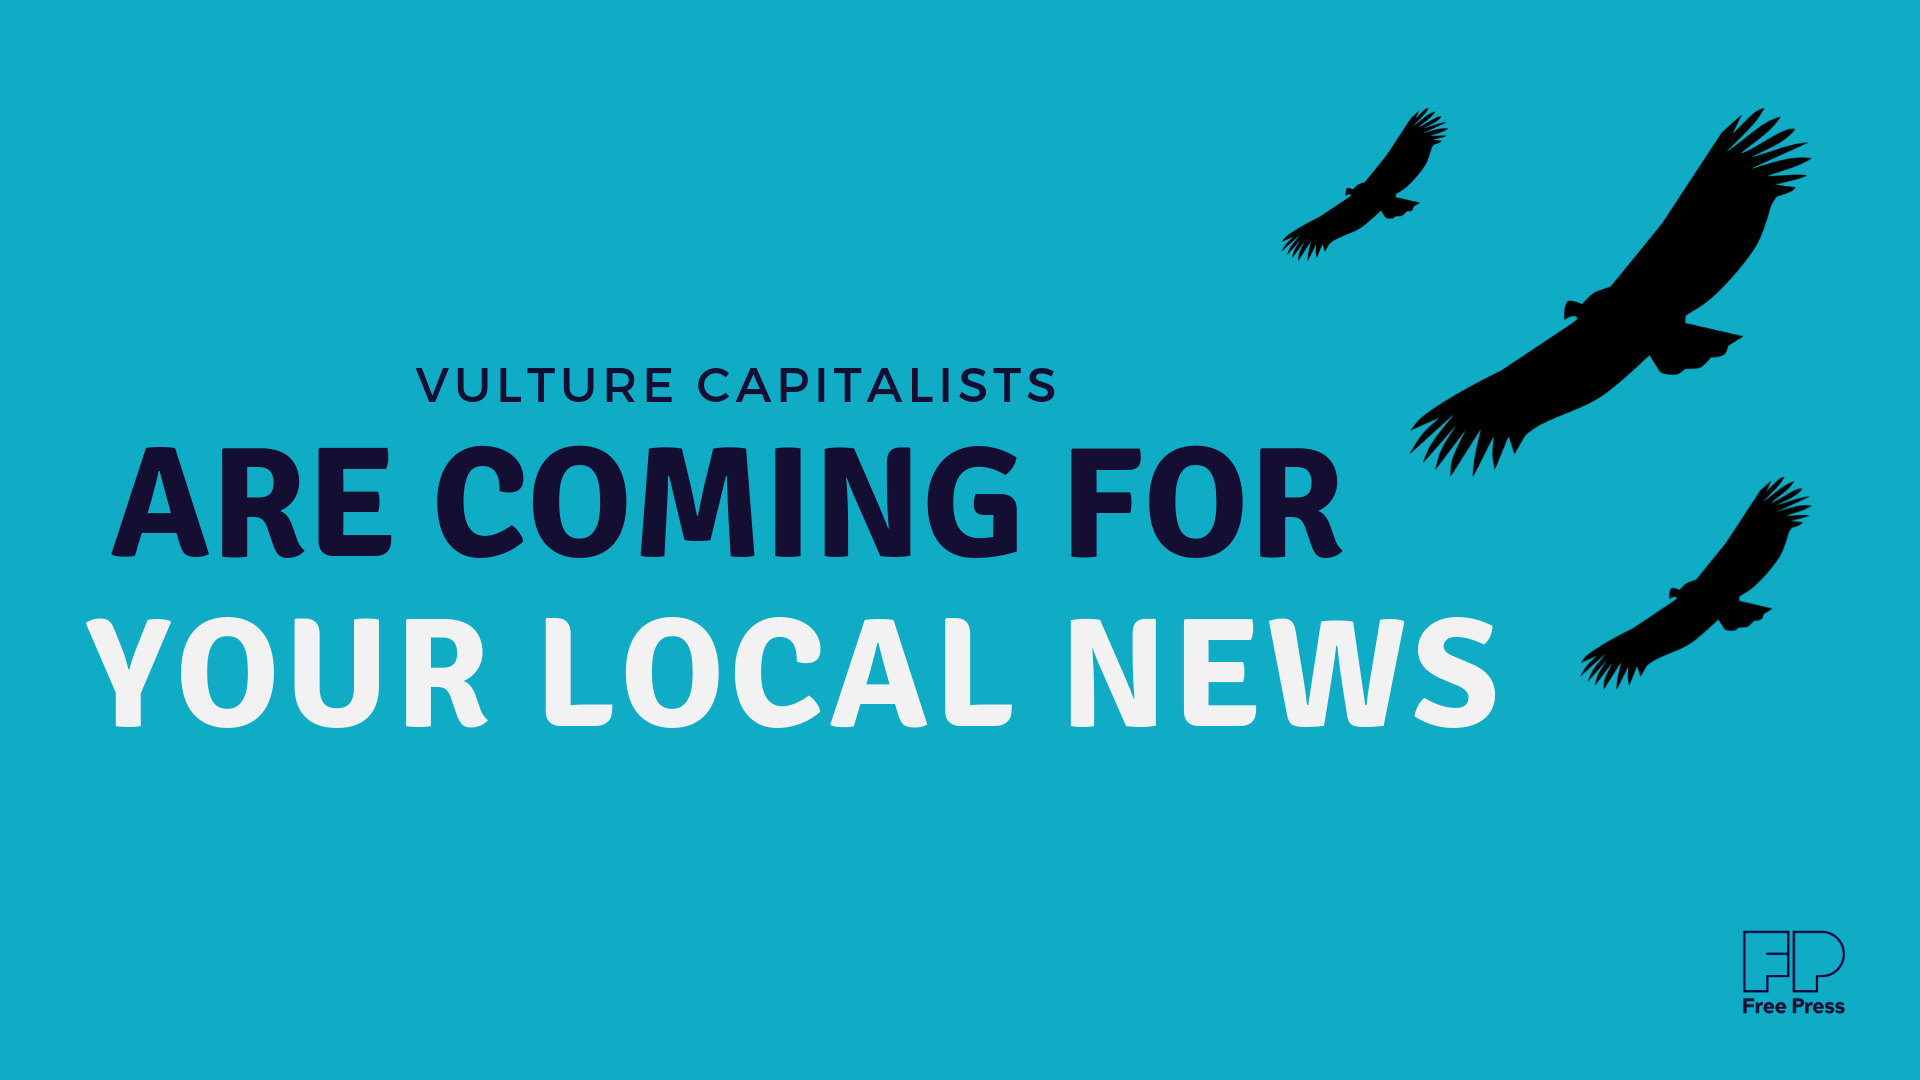 Vulture Capitalists Are Coming For Your Local News